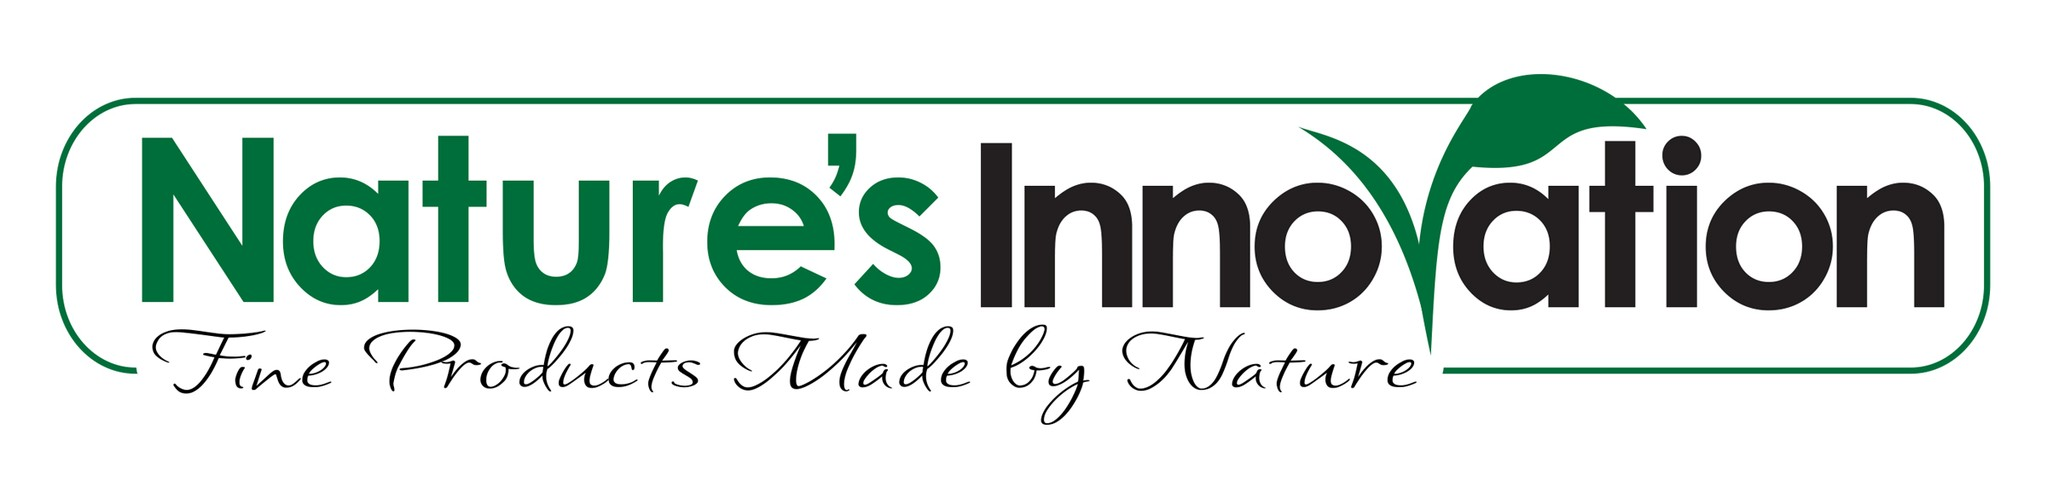 Nature's Innovation, Fine Products Made by Nature